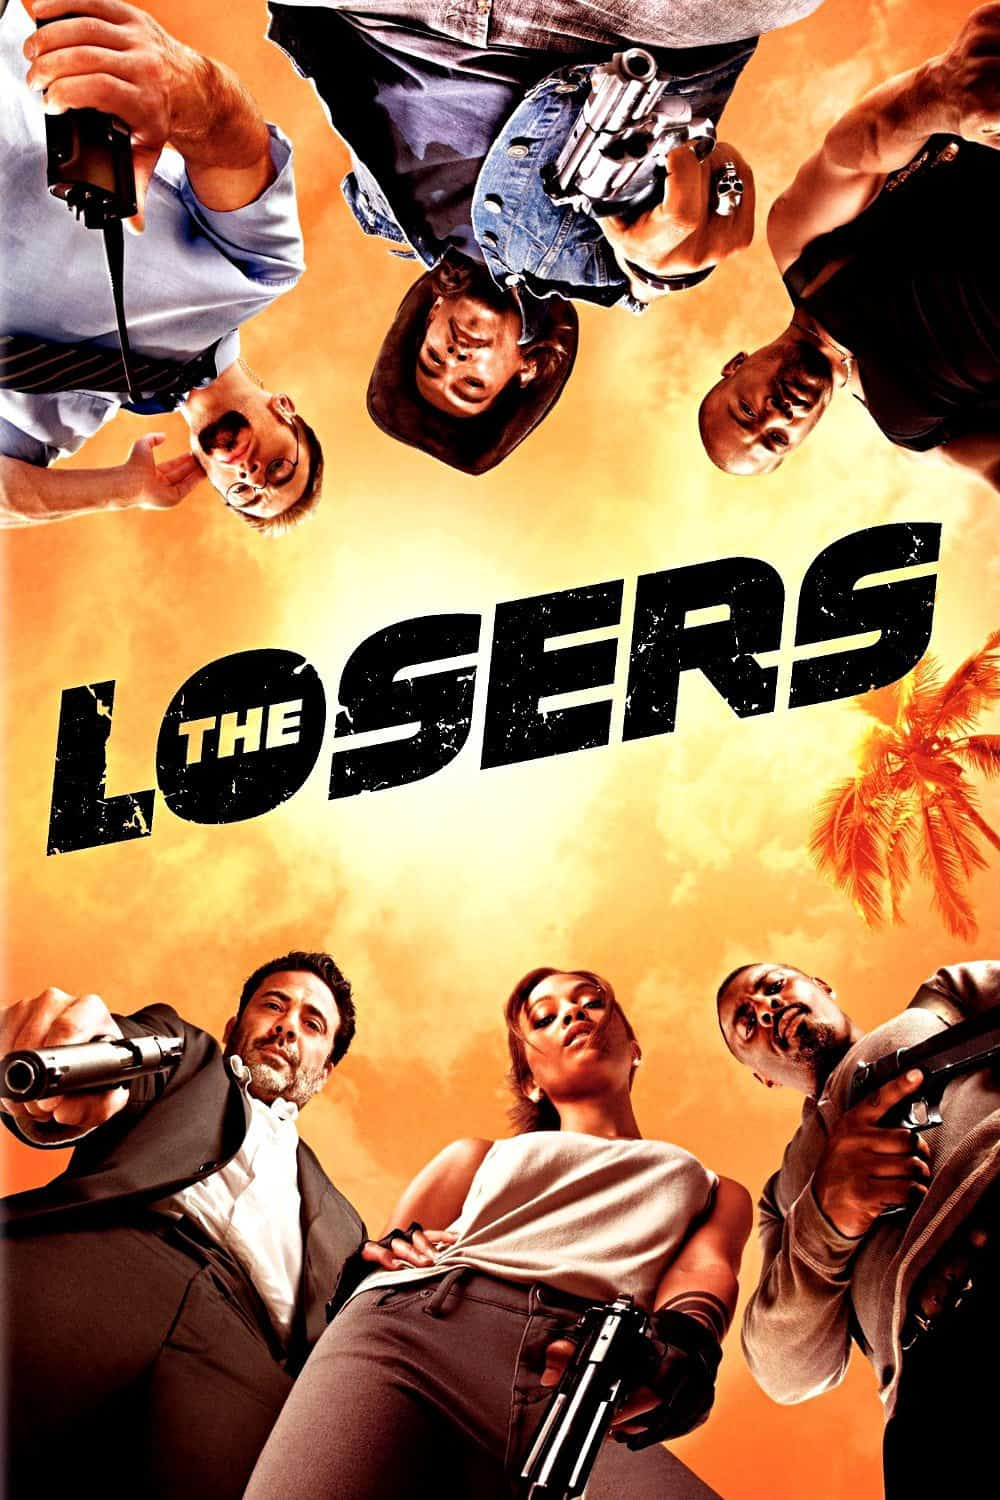 The Losers, 2010